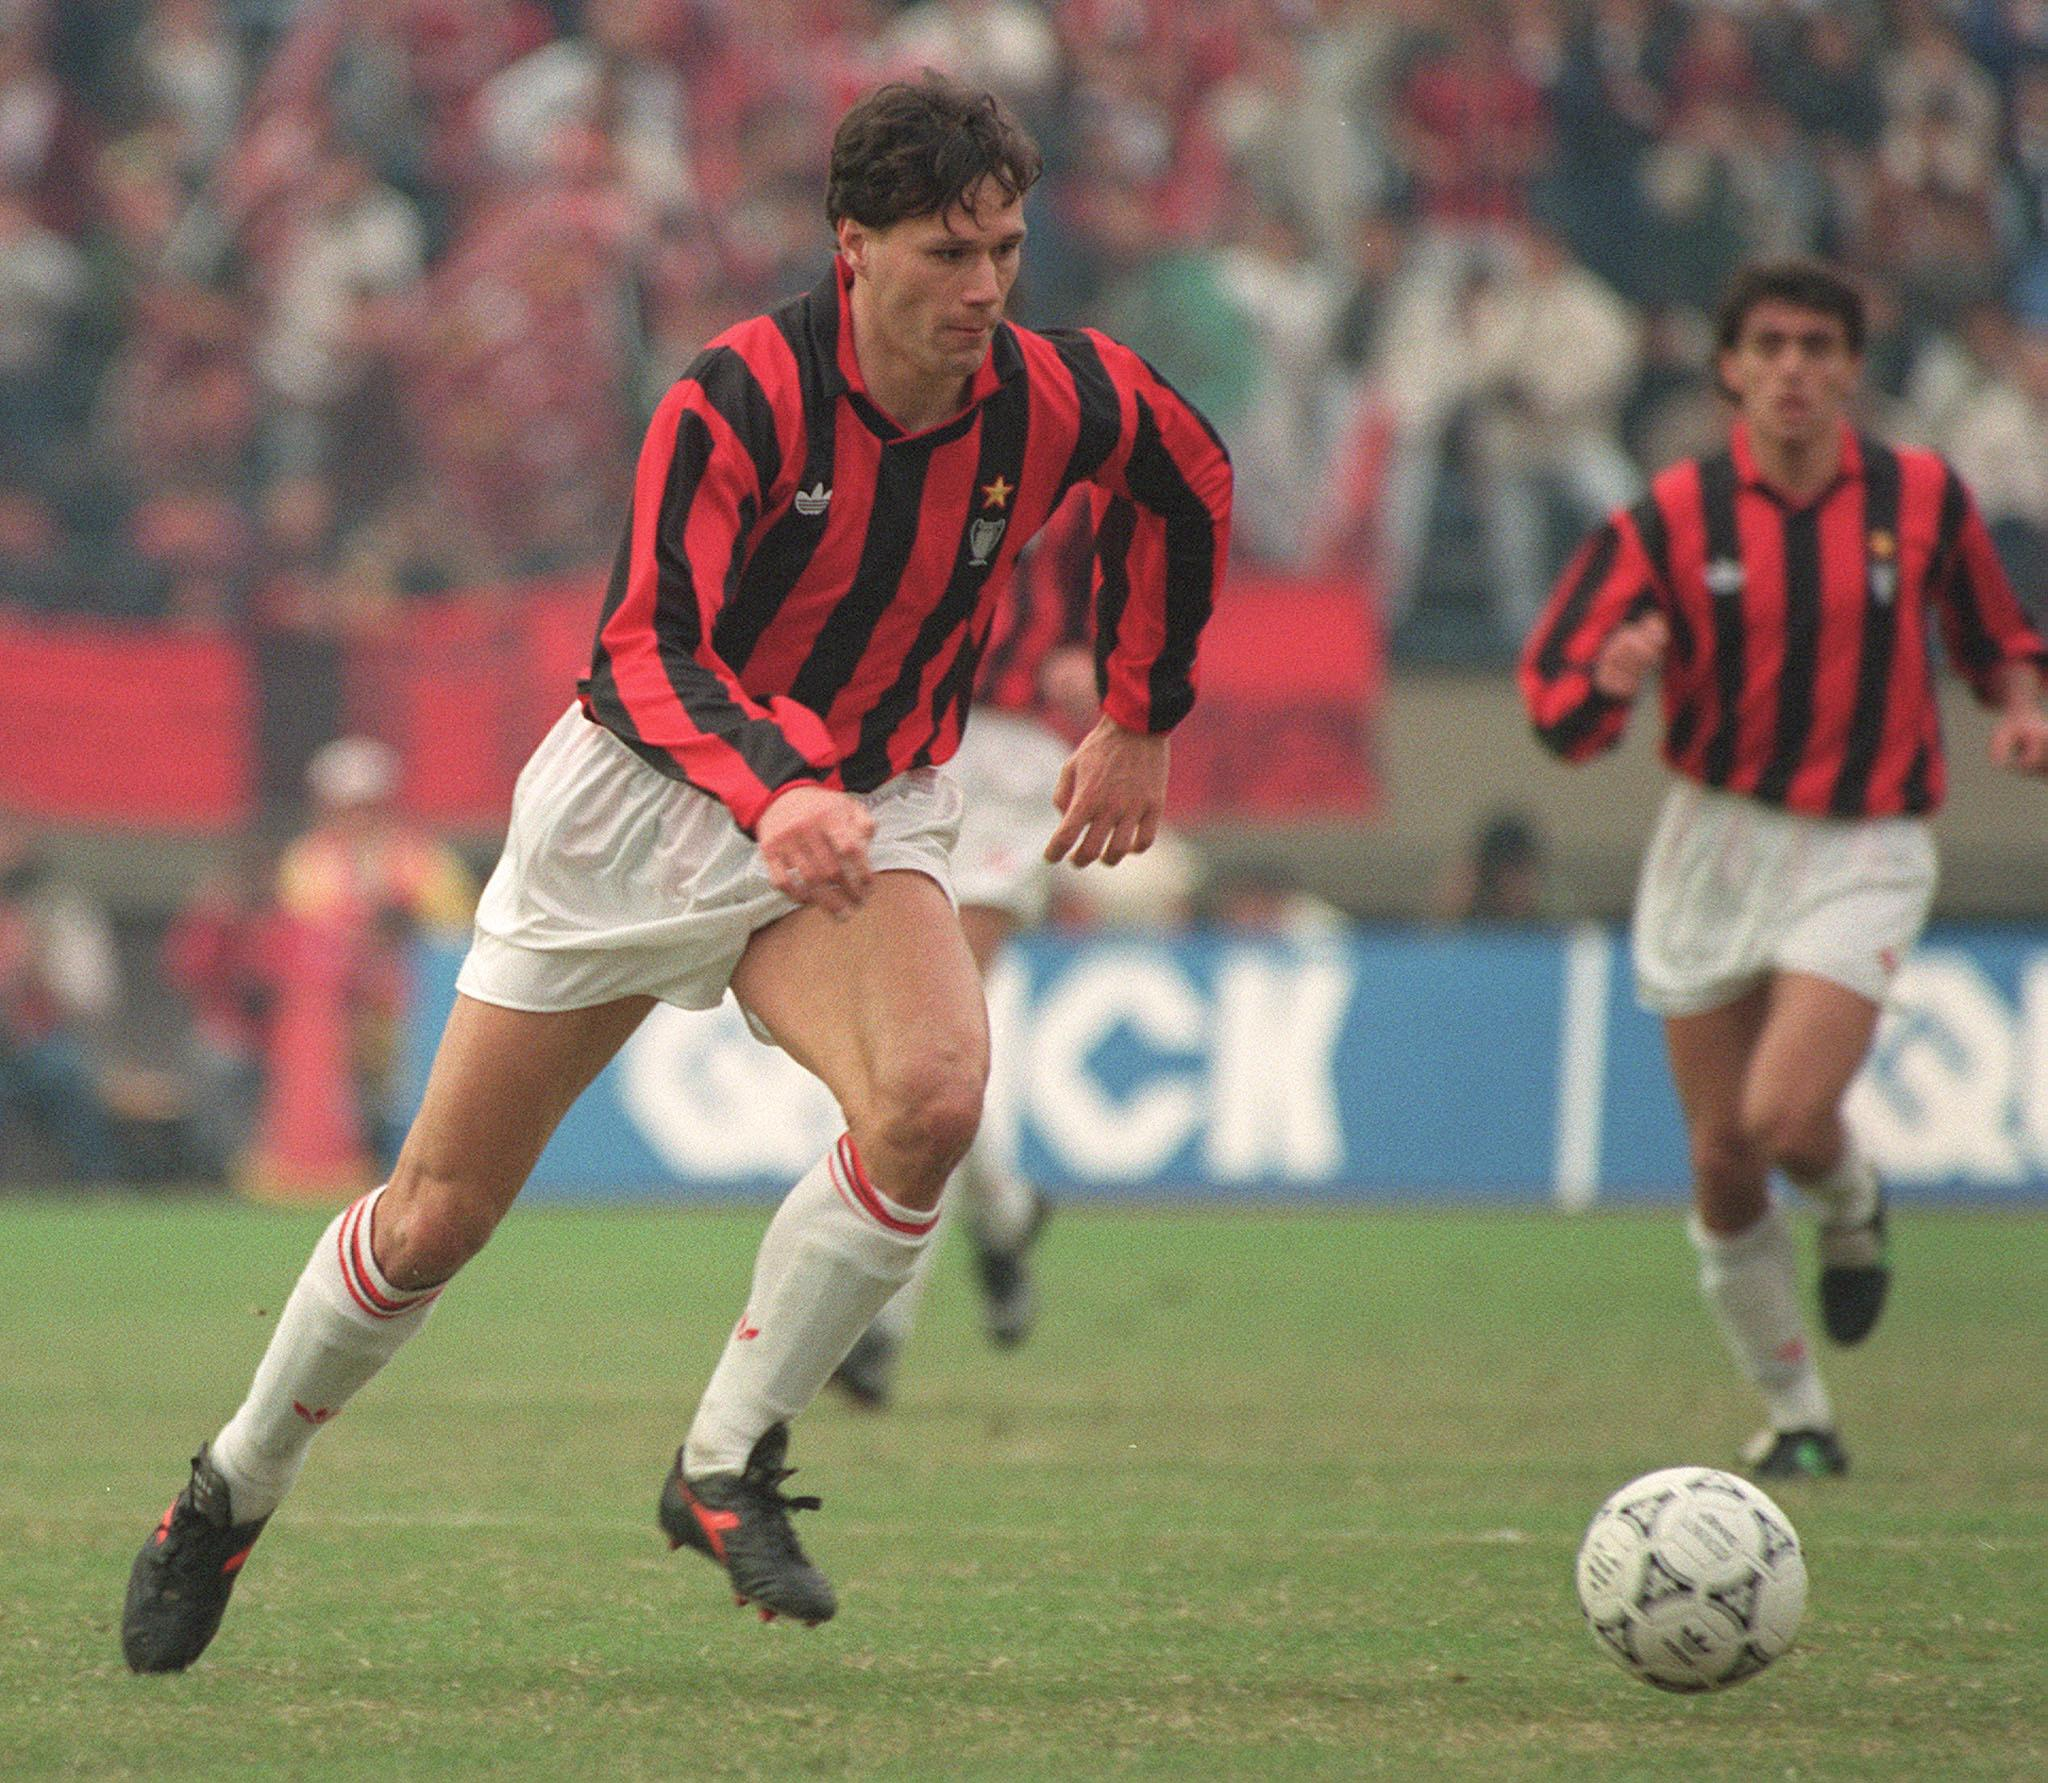 TOKYO, JAPAN: AC Milan's Dutch forward Marco Van Basten dribbles upfield, 09 December 1990 in Tokyo, during the Toyota Cup final between the European champion, Milan, and the South American champion, Olimpia. (Photo credit should read TOSHIFUMI KITAMURA/AFP/Getty Images)